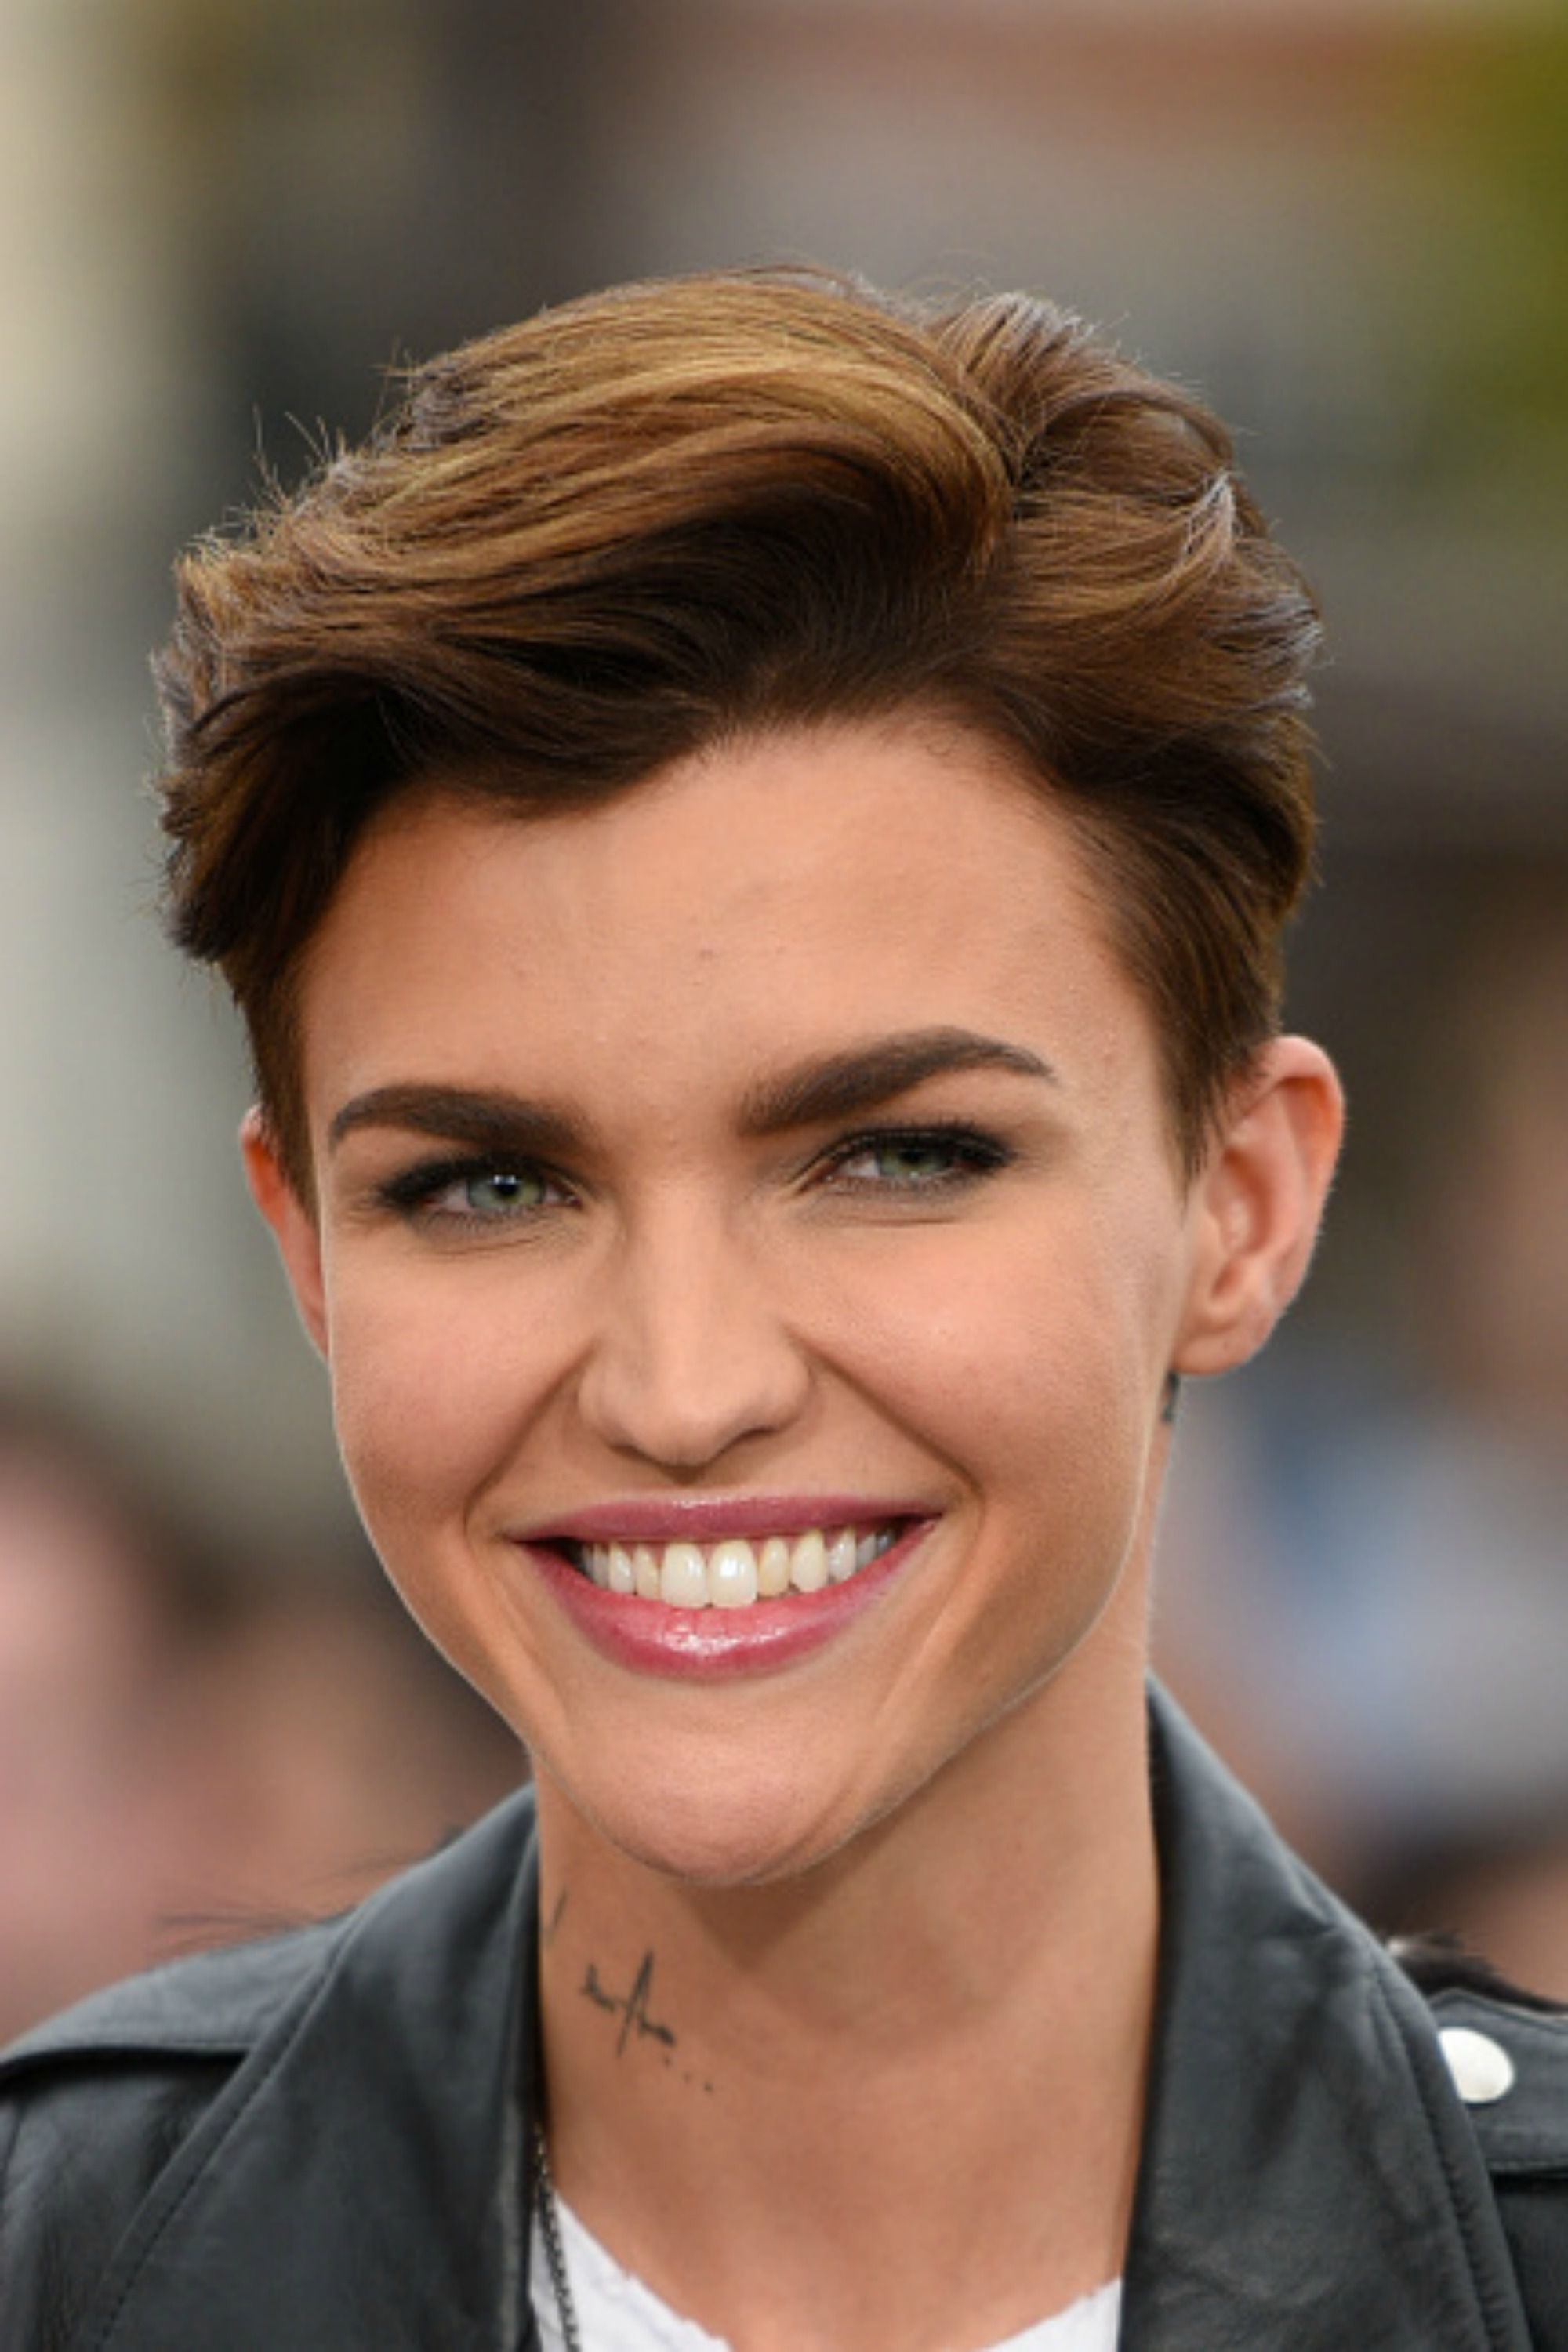 30 Short Hairstyles For Thick Hair 2017 – Women's Haircuts For Short With Regard To Super Short Haircuts For Girls (View 7 of 25)